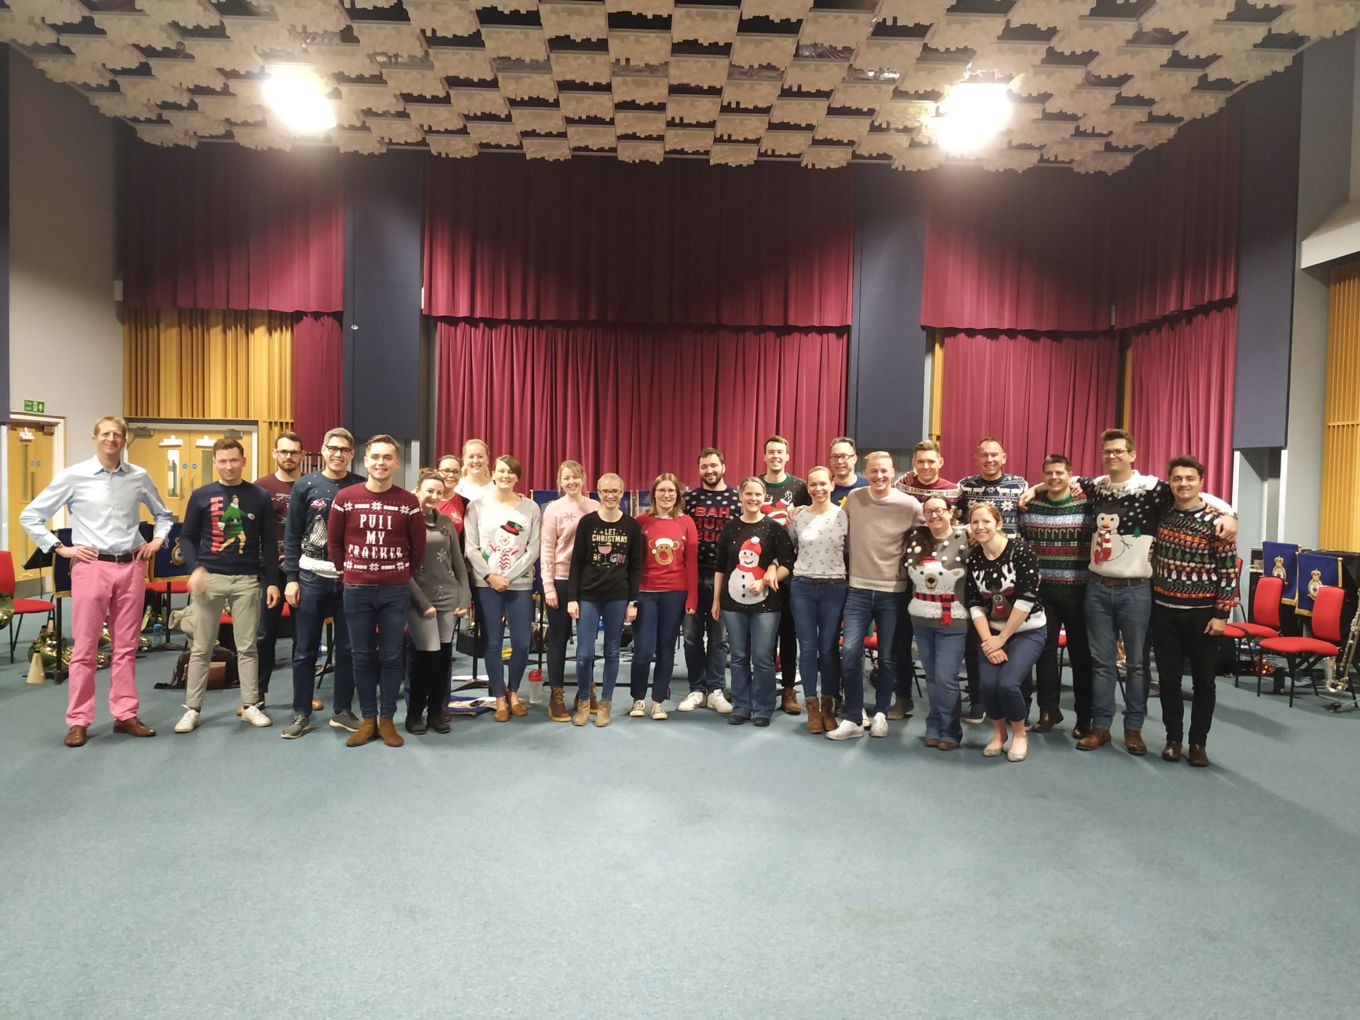 People in Christmas jumpers pose for a picture.